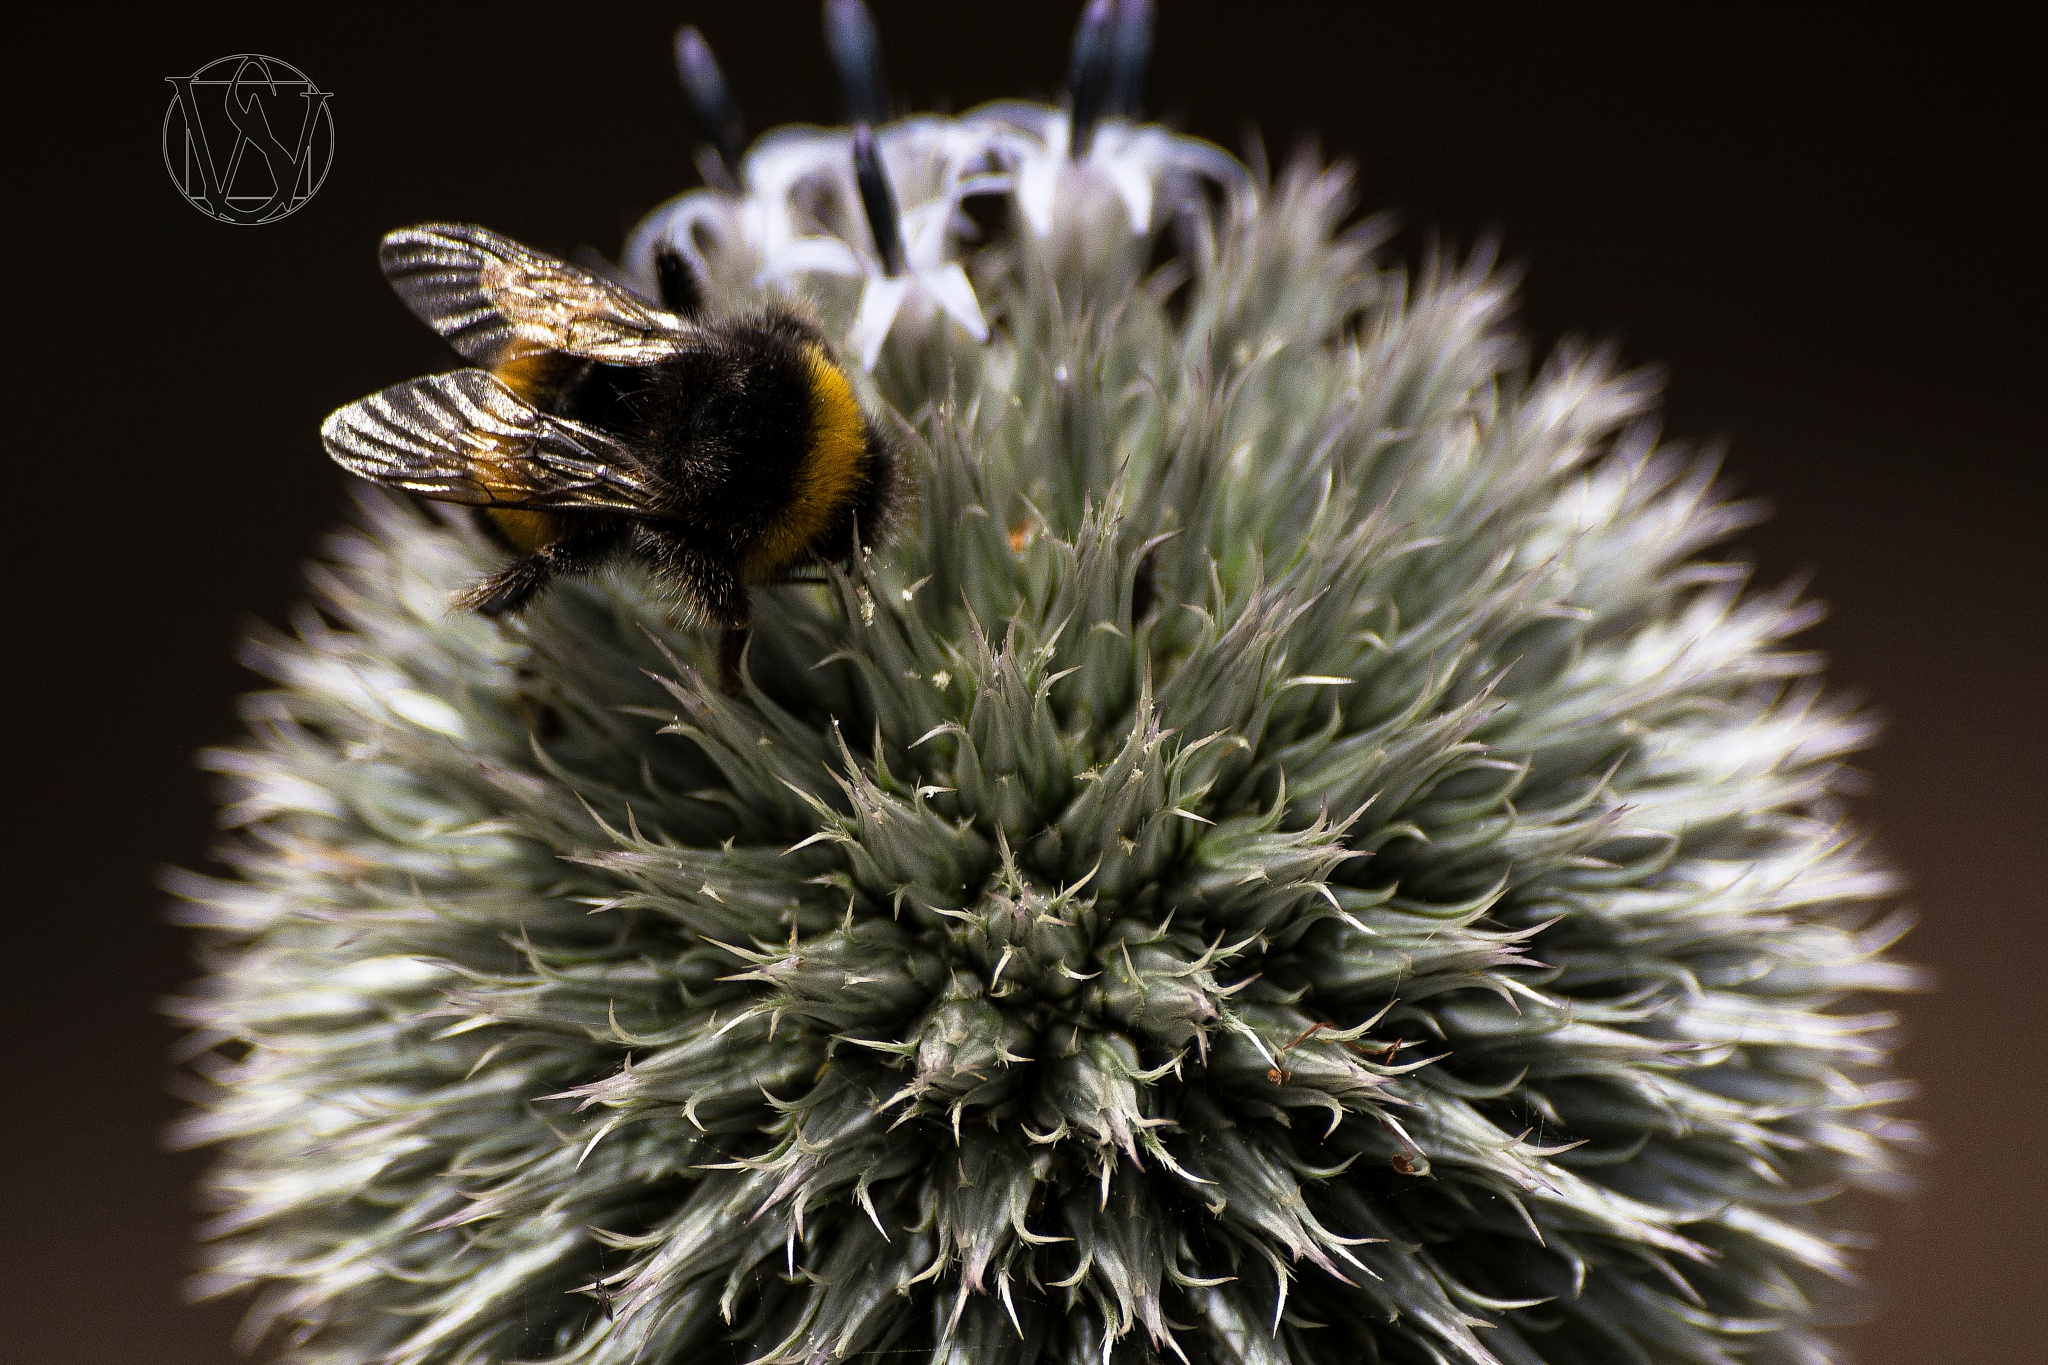 Buzz Off I'm Busy by David Drummond